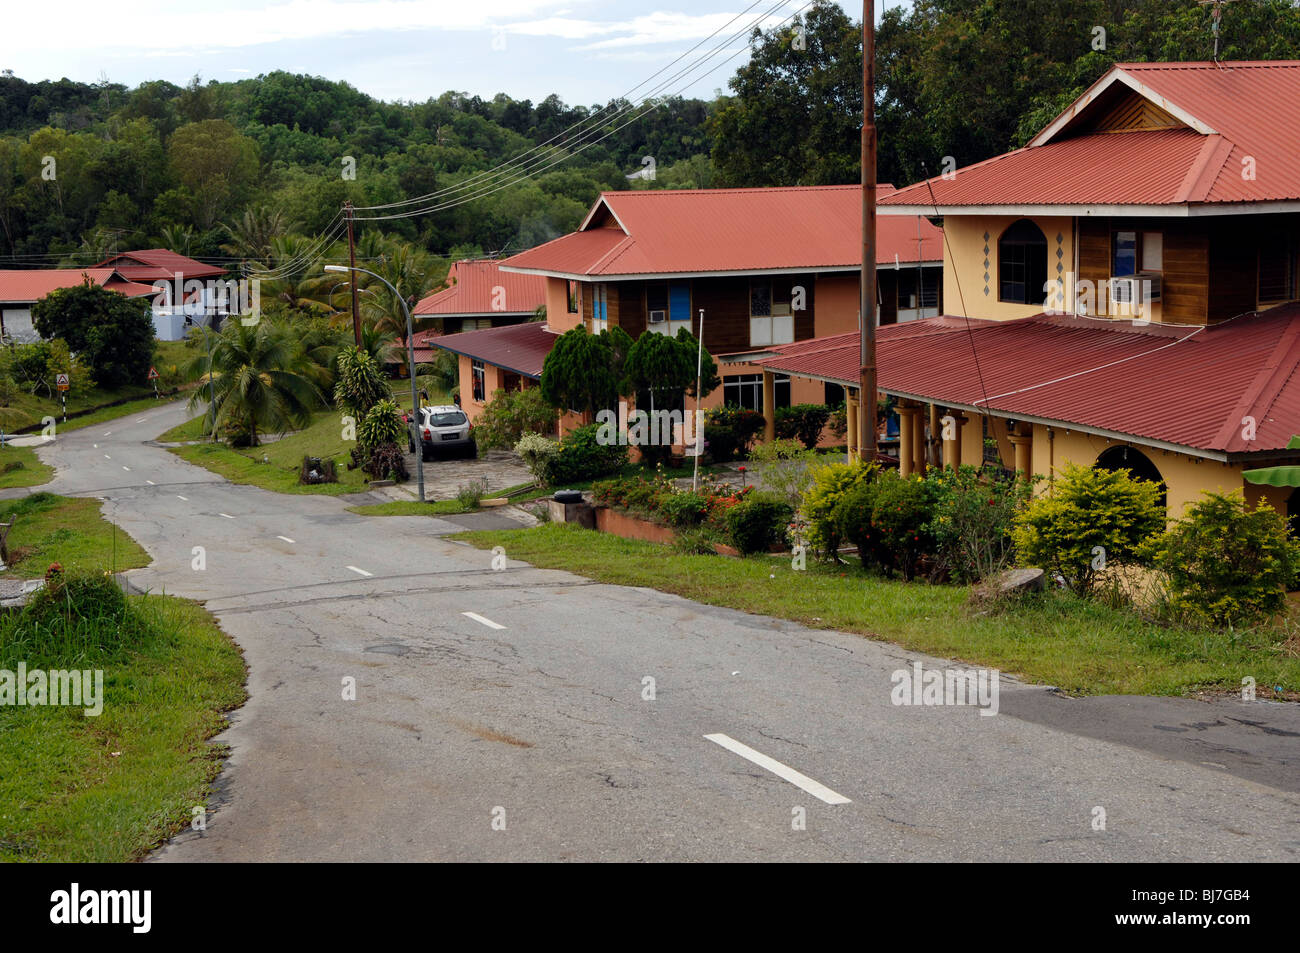 Government housing project, Brunei Darussalam - Stock Image